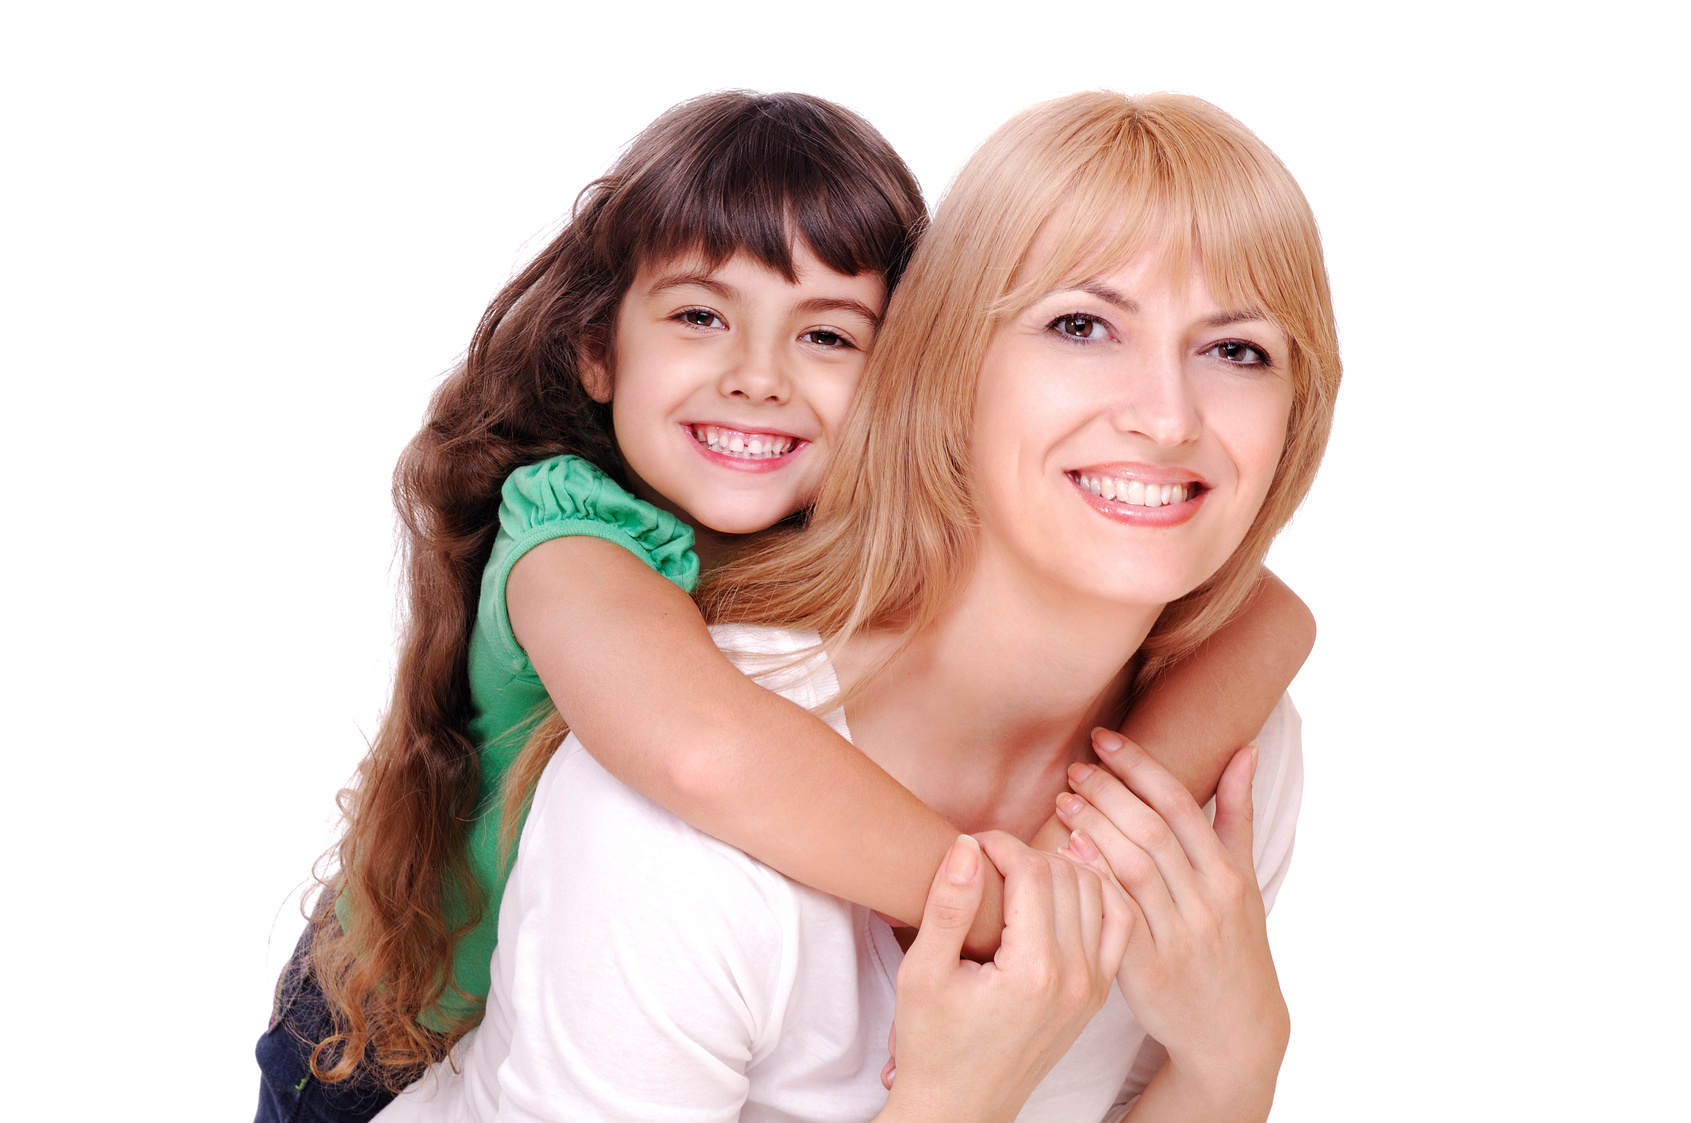 image of a White girl wearinig a green top and jeans hugging a white woman with blnde hair, both are smiling.